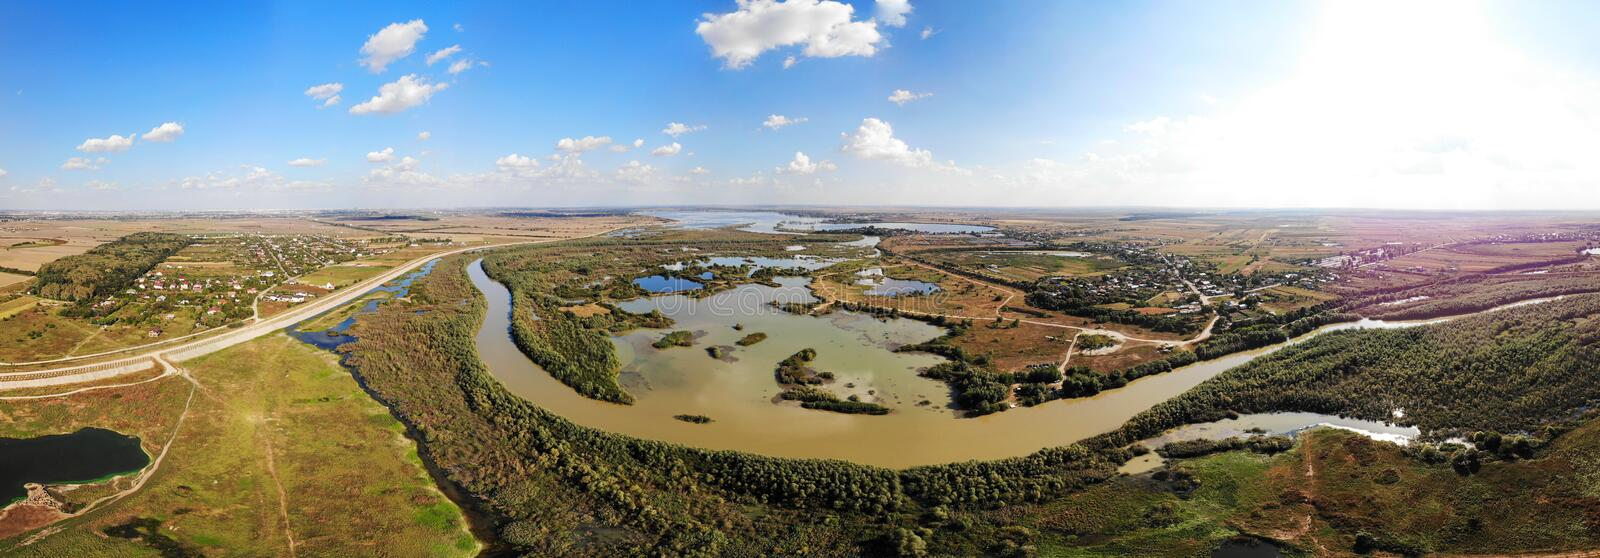 180 panorama over Arges County - Kayaking stock image